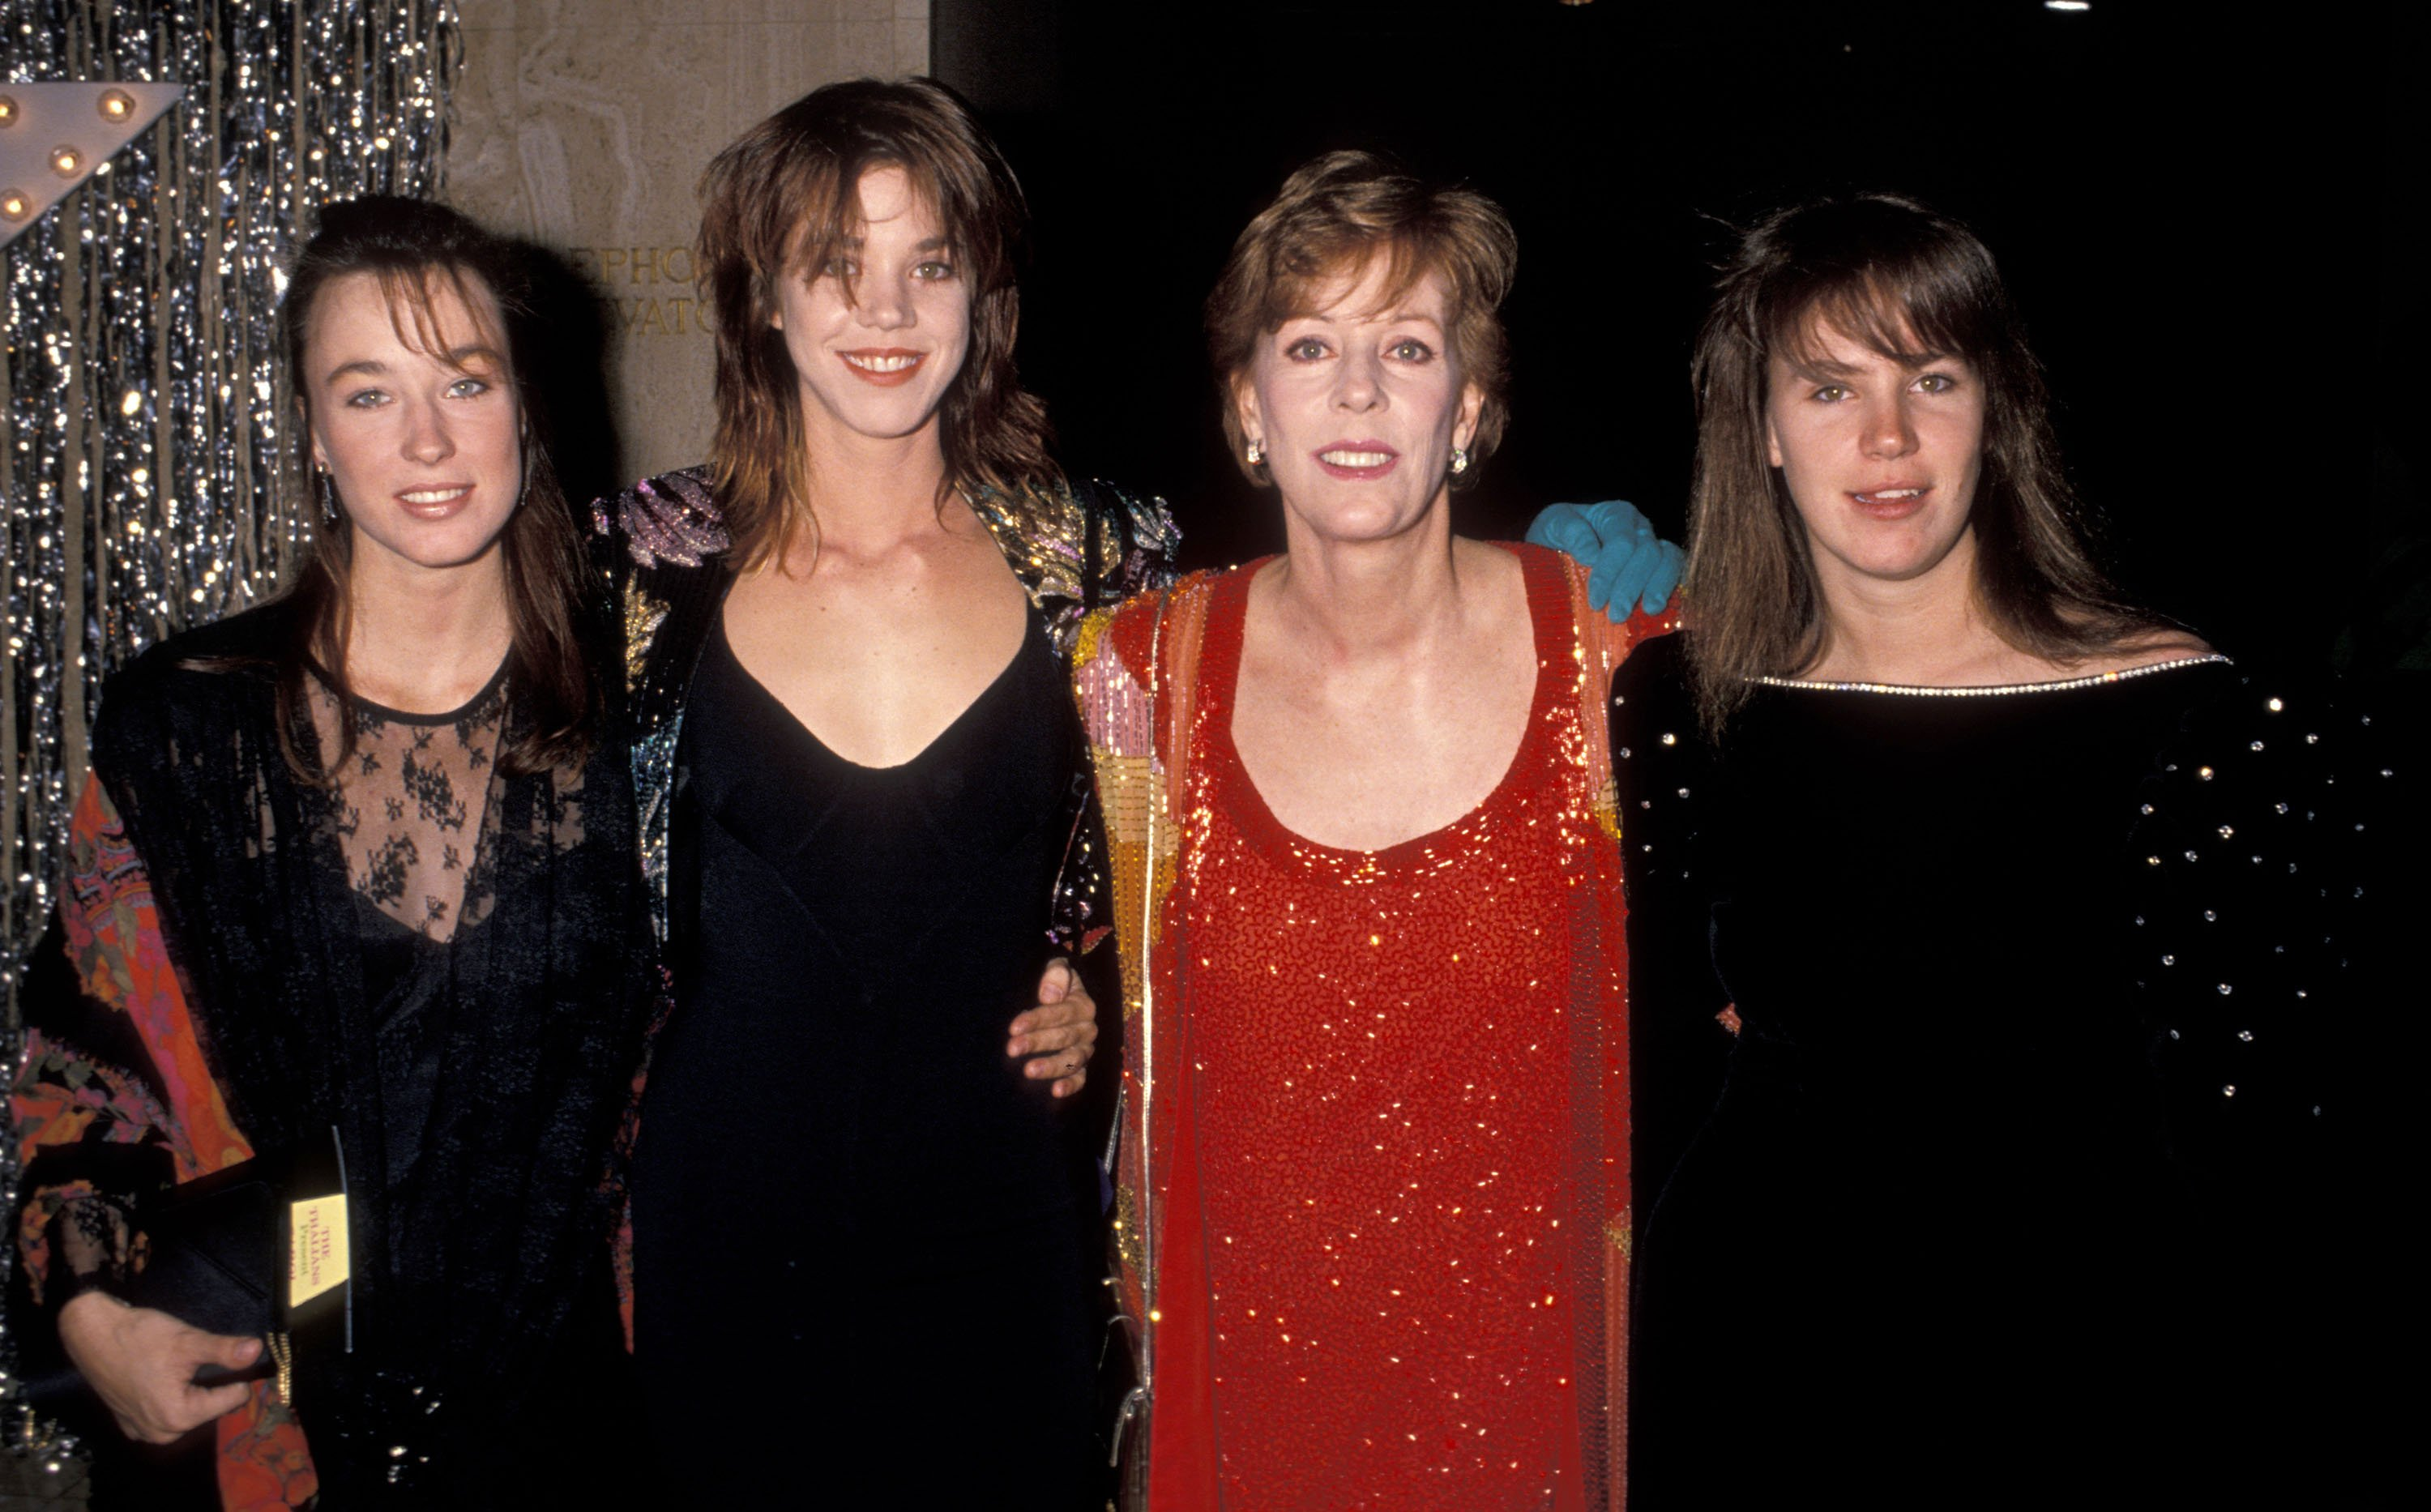 Carol Burnett and daughters during 34th Annual Thalians Ball, in October 1989, in Century City, California, United States. | Source: Getty Images.